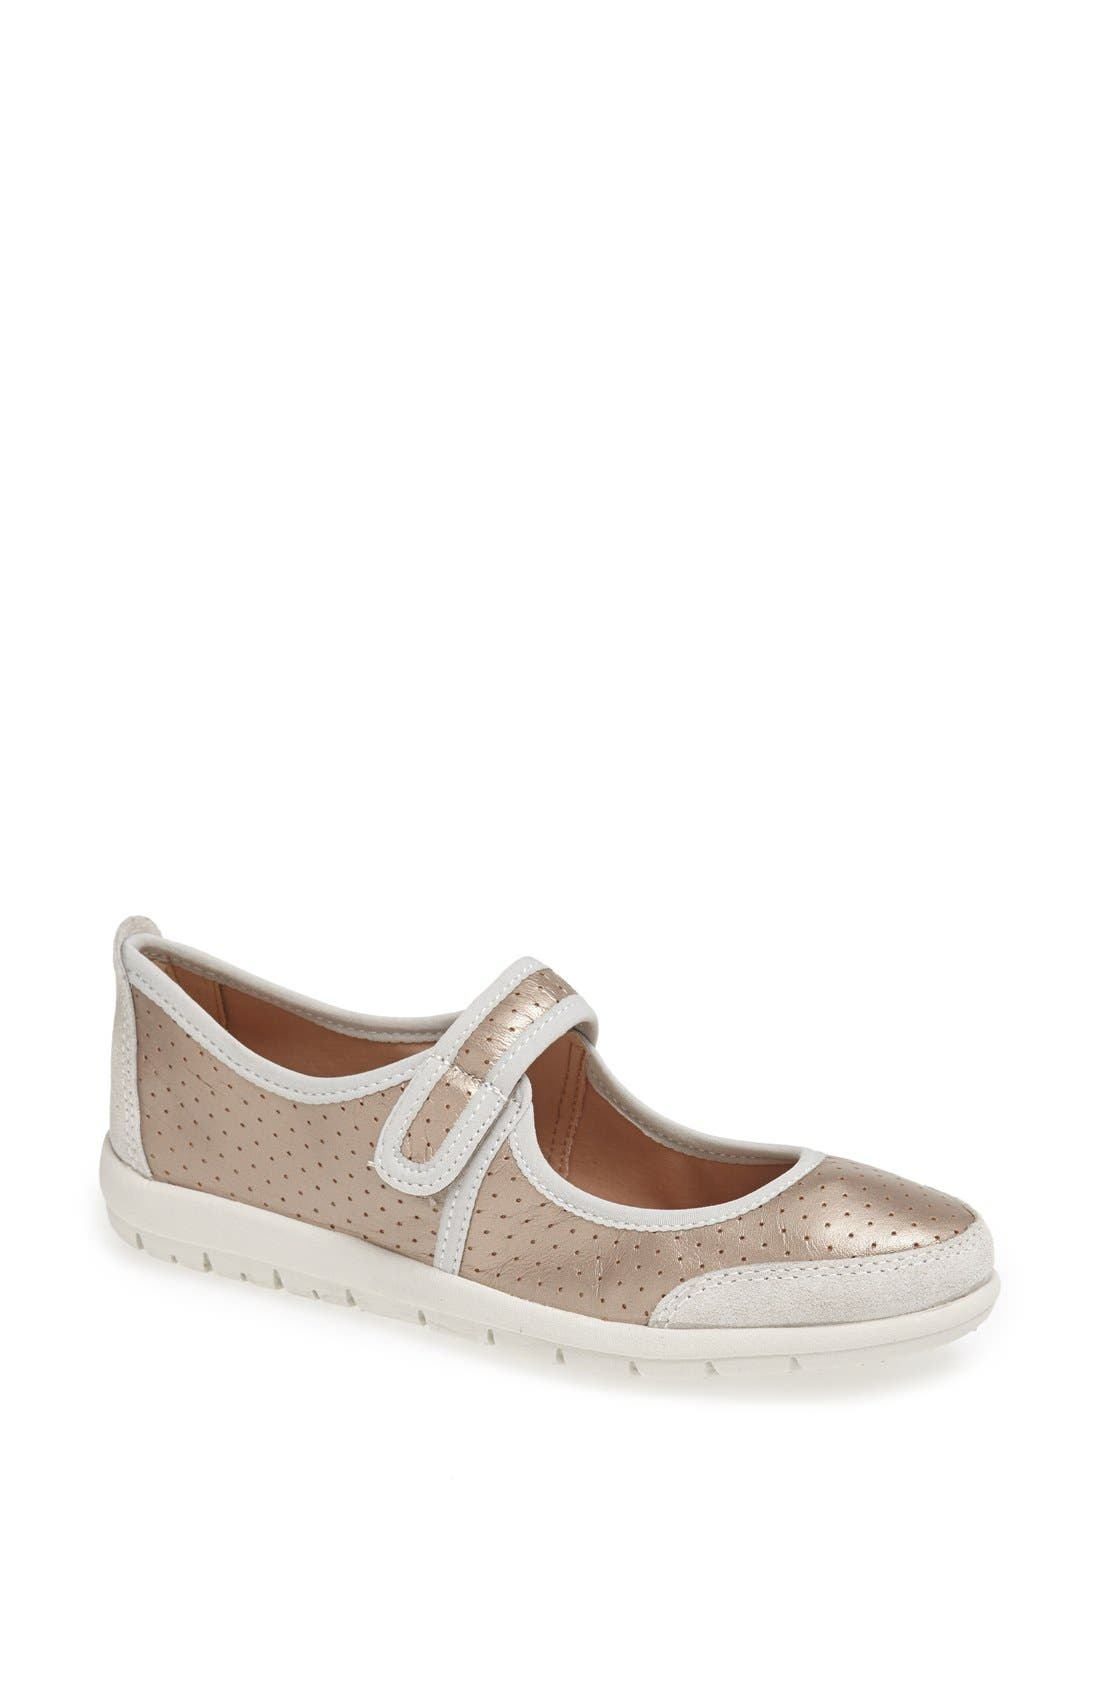 Alternate Image 1 Selected - Easy Spirit 'e360 - Cesia' Mary Jane Flat (Women)